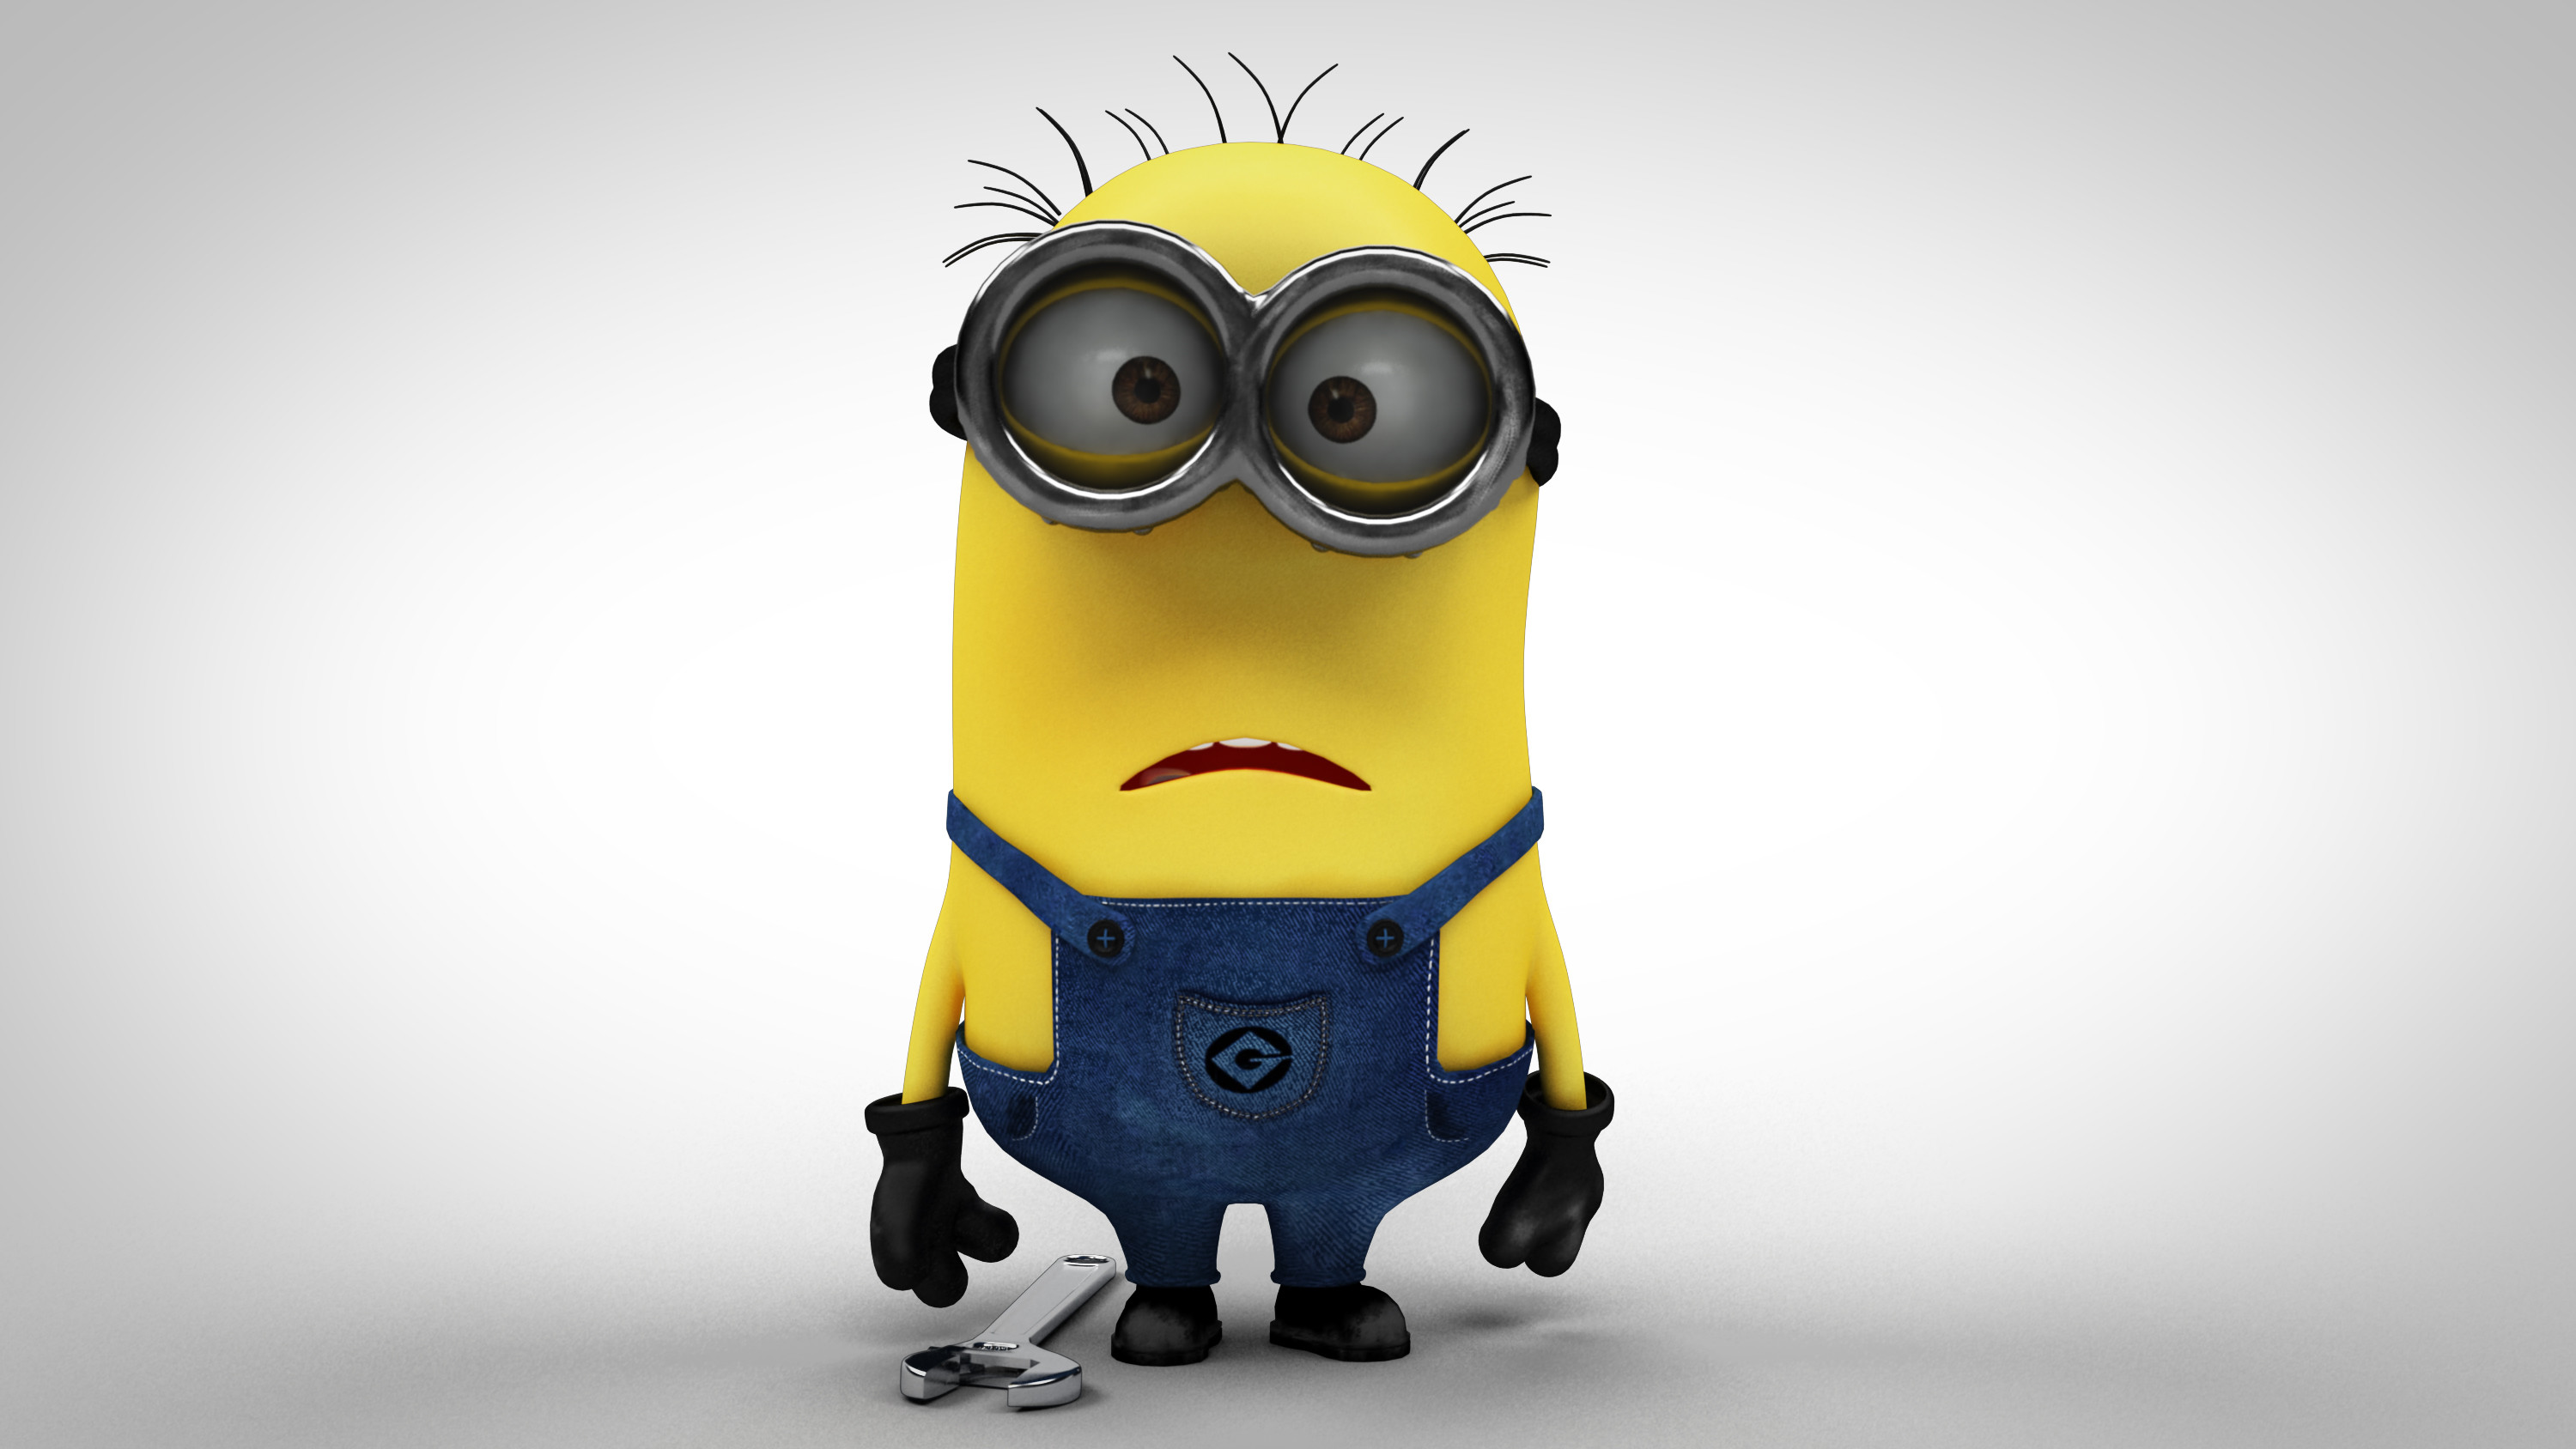 Despicable Me Minion by Rofhiwa on DeviantArt